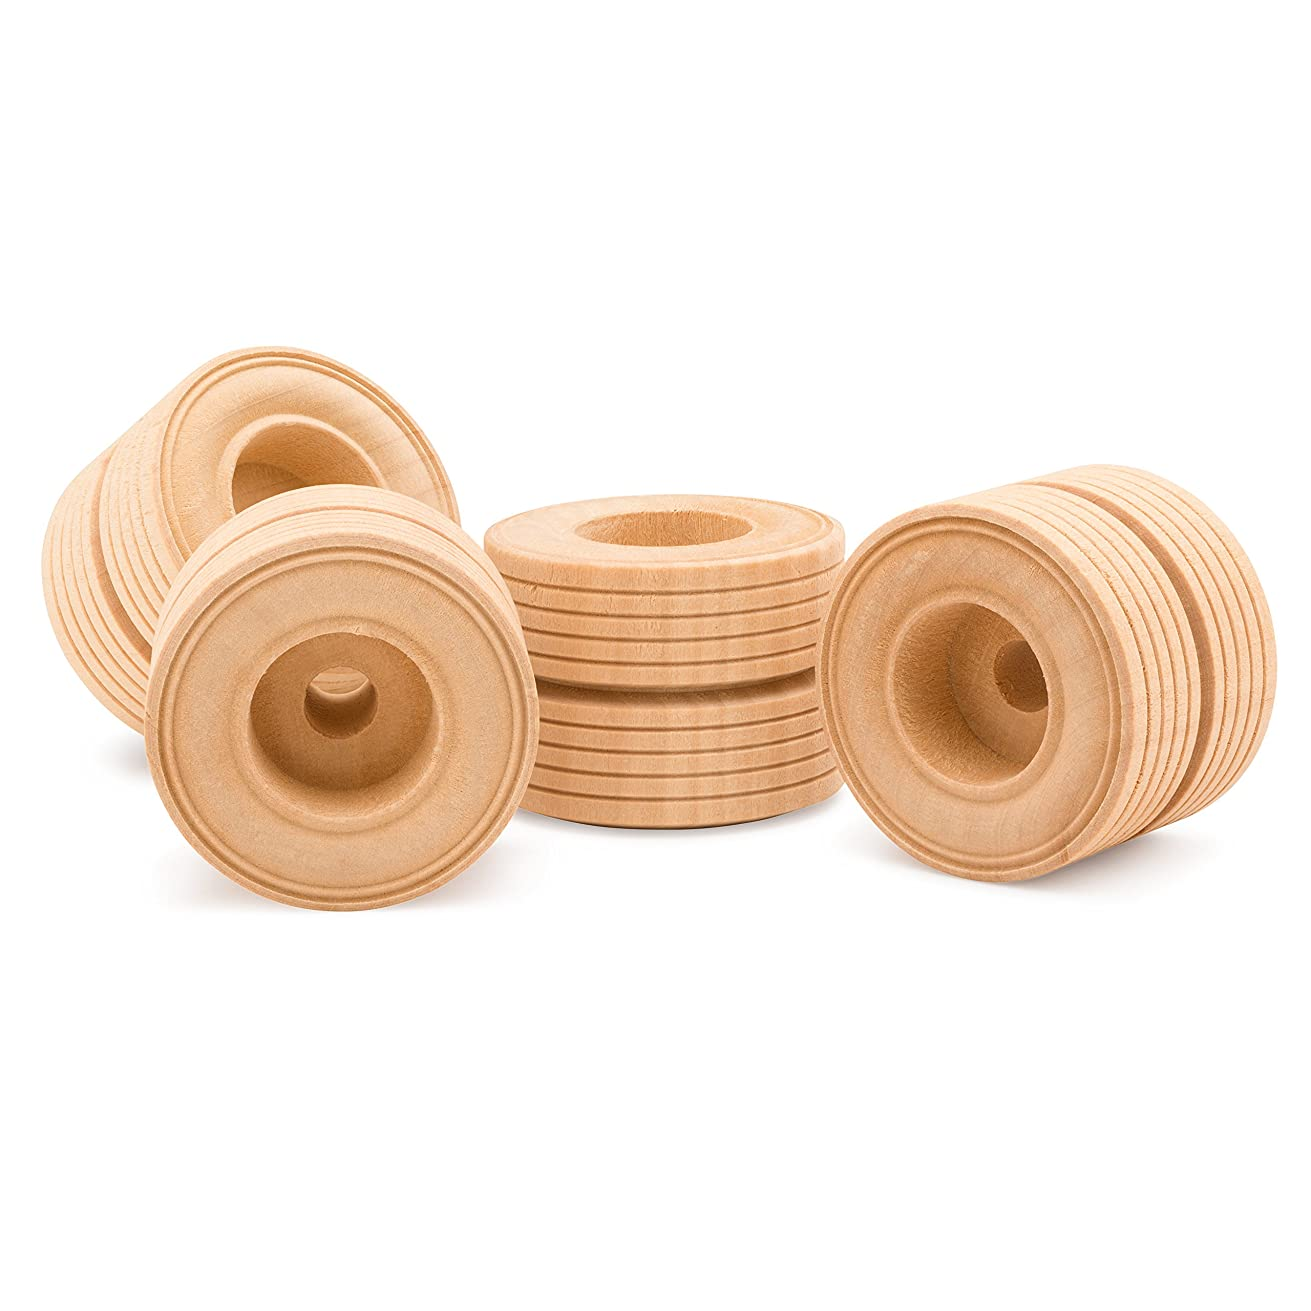 Woodpeckers 12 Wooden Craft Toy Treaded Wheels (2